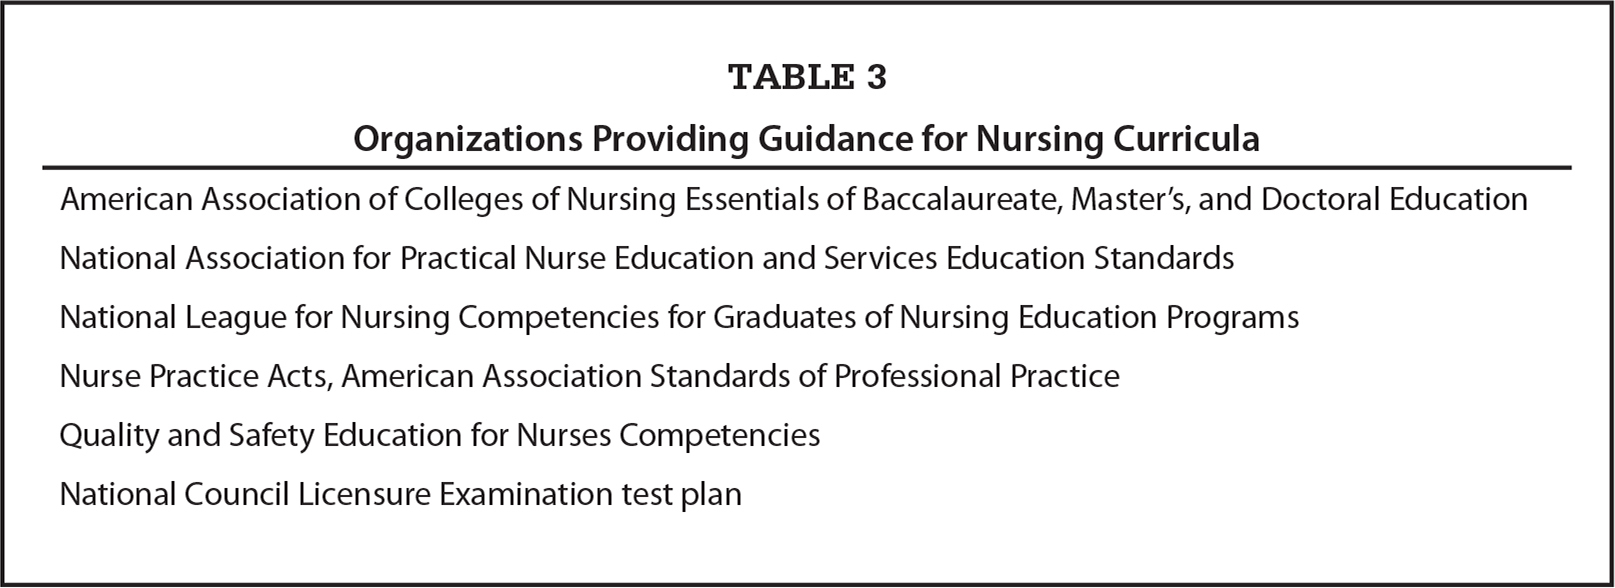 Organizations Providing Guidance for Nursing Curricula